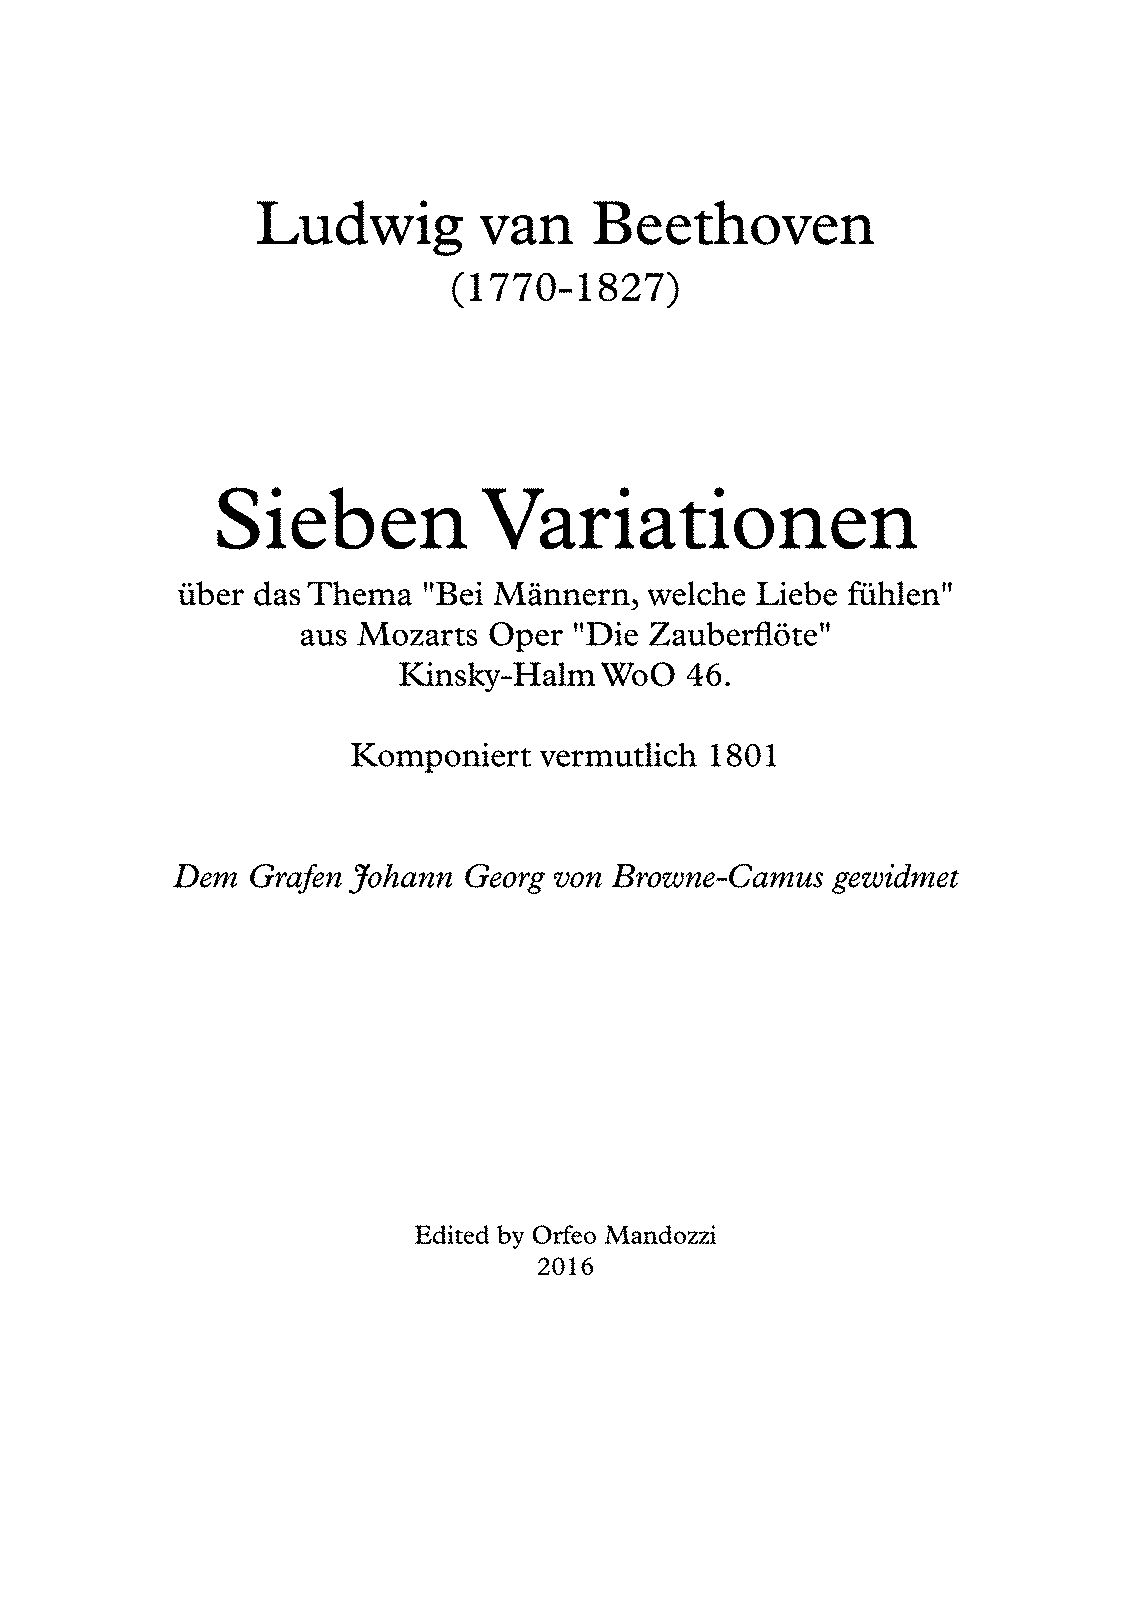 PMLP16869-Beethoven Variationen Woo 46 Mandozzi Cello.pdf